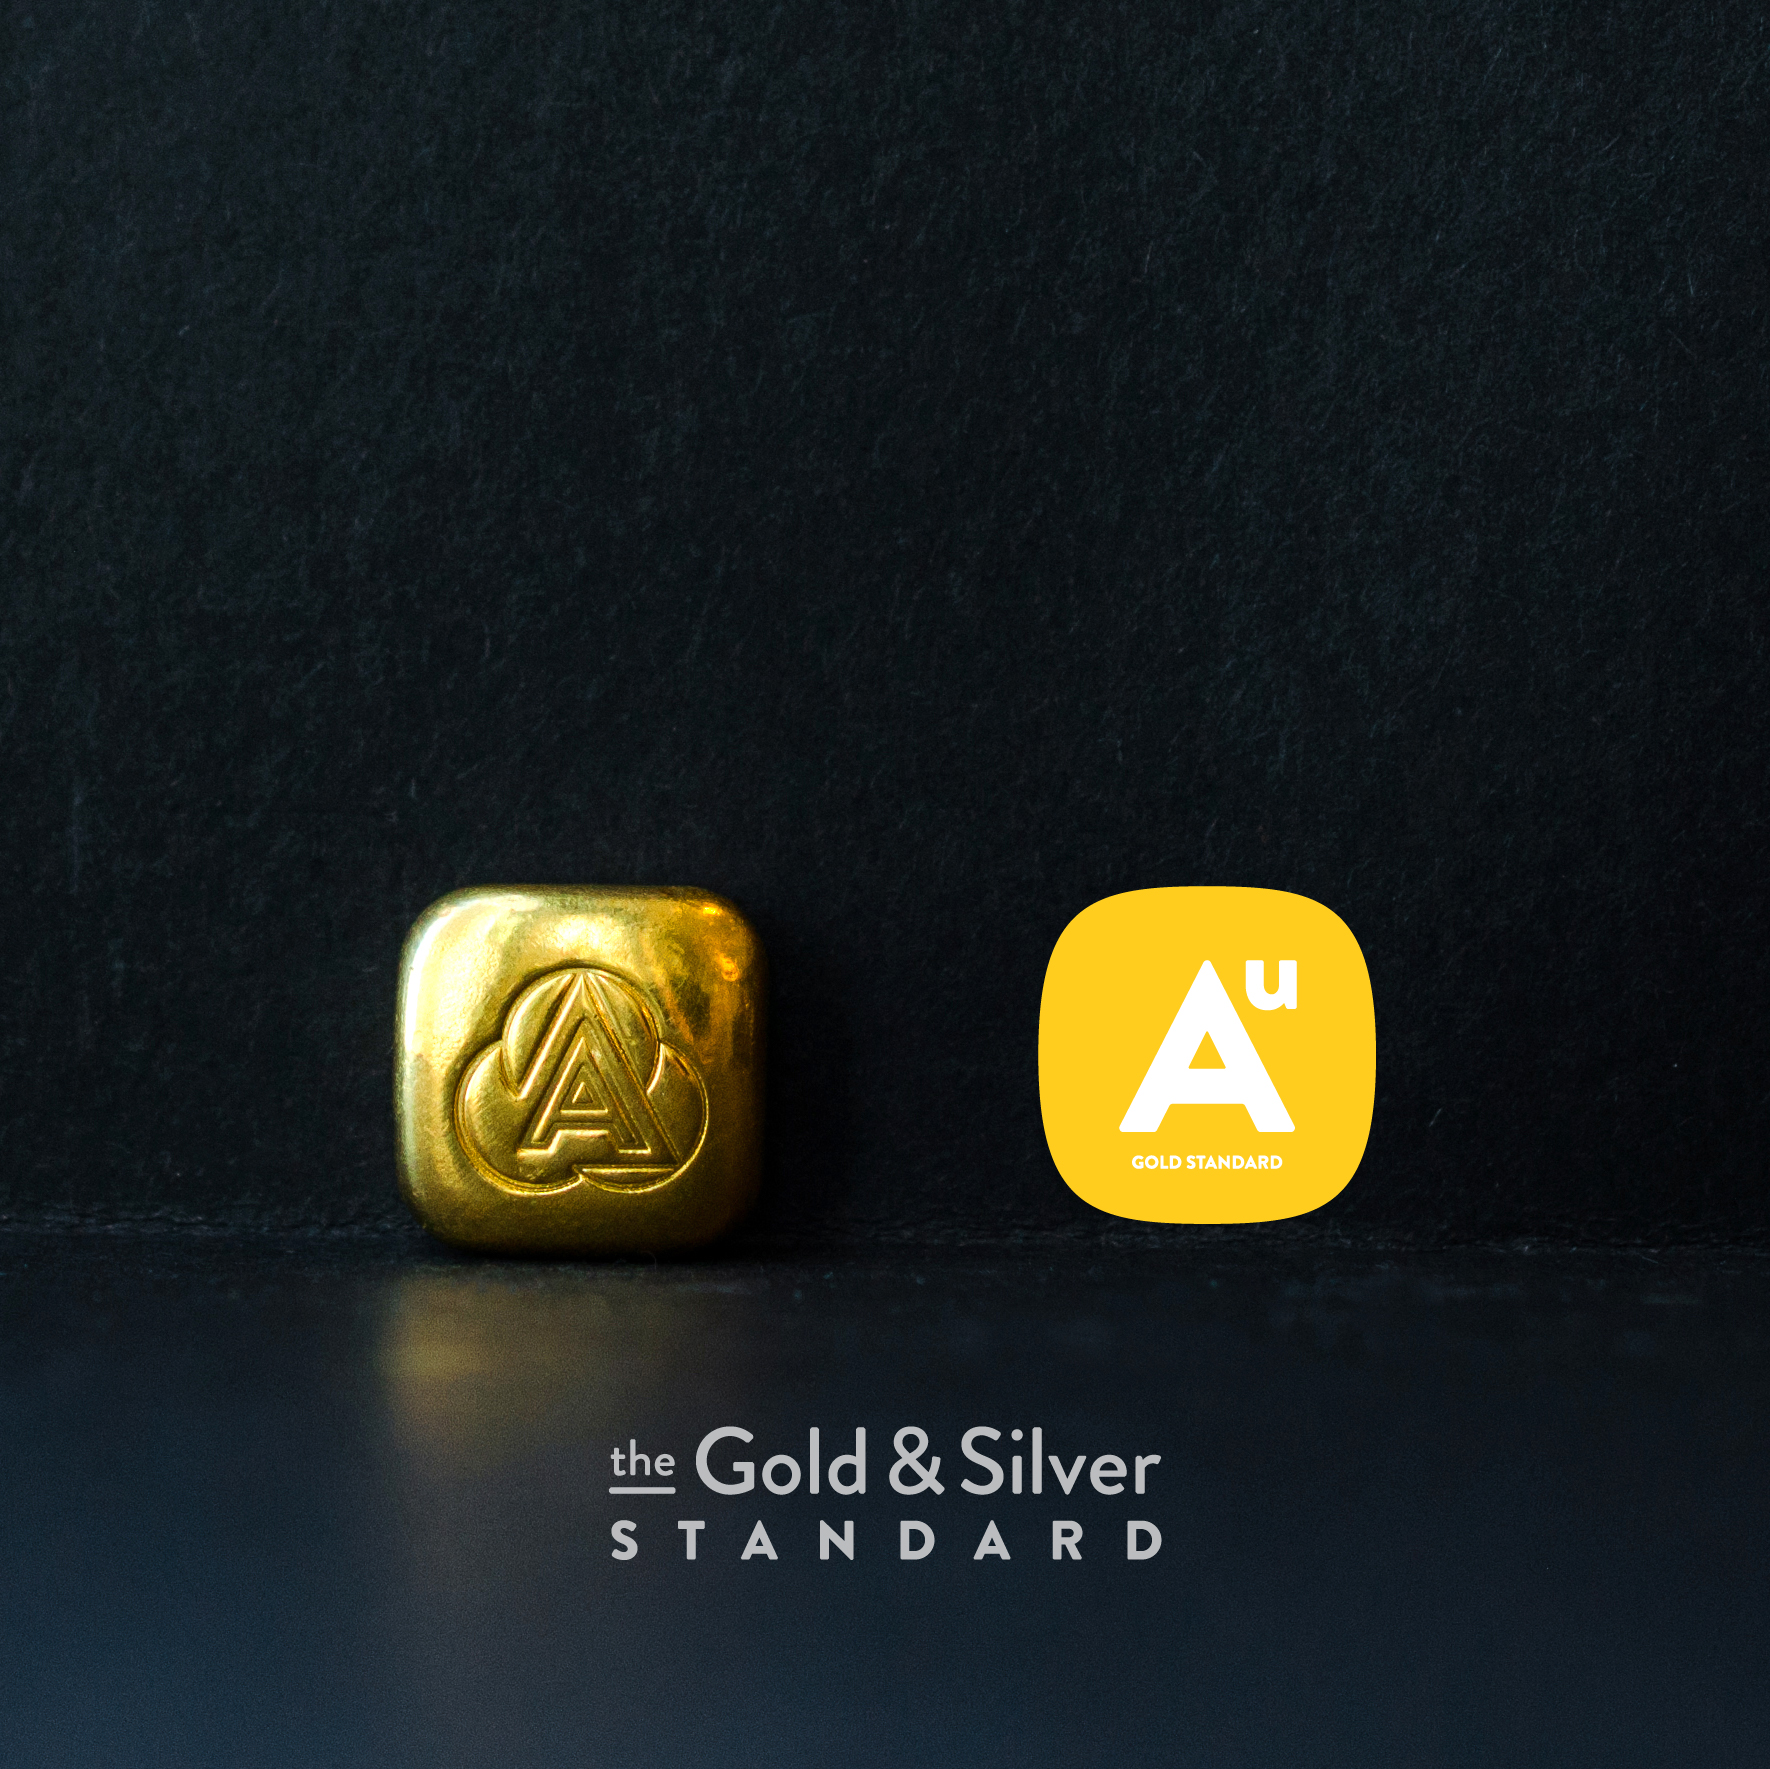 Gold and Silver Standard - STABLE during crypto volatility